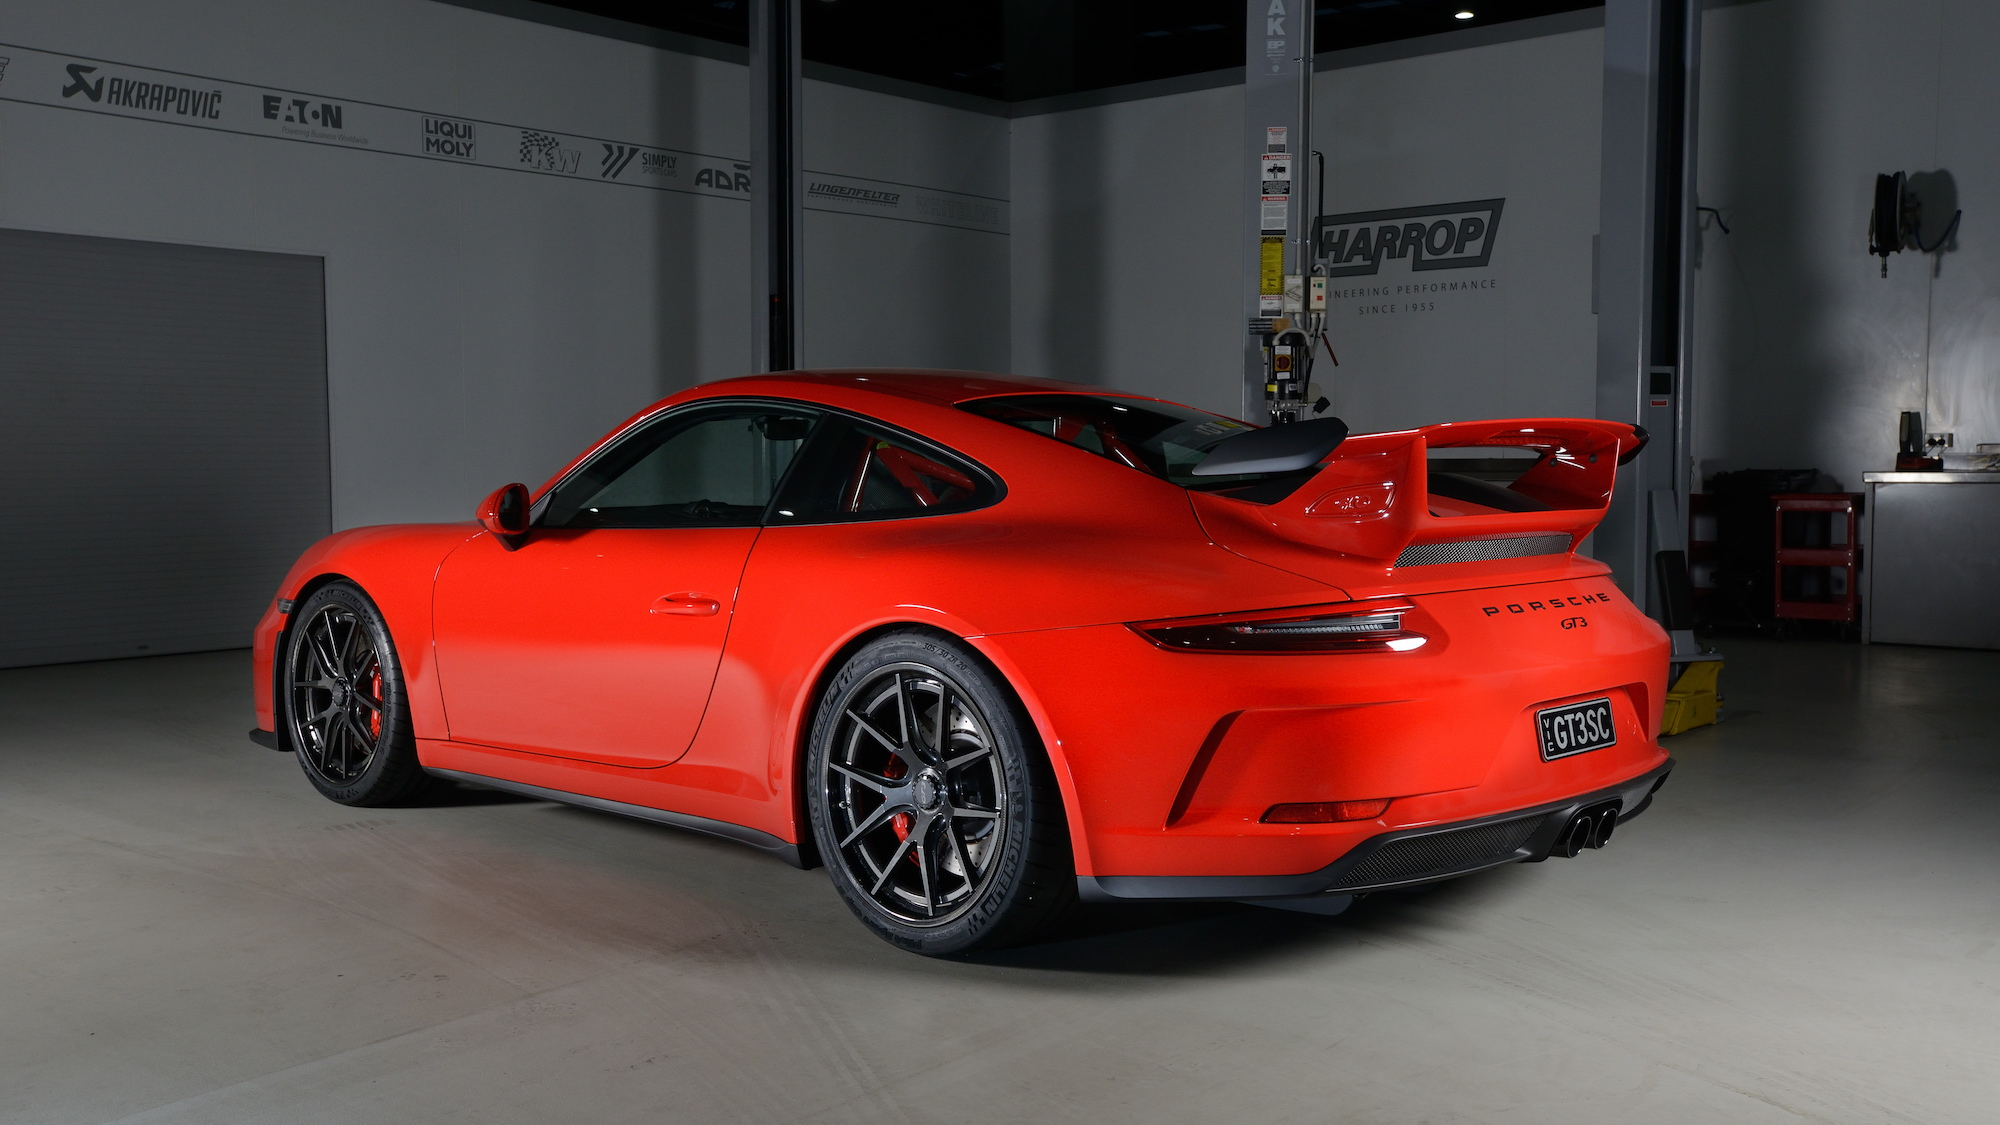 Porsche 911 GT3 with Forgeline Carbon + Forged wheels